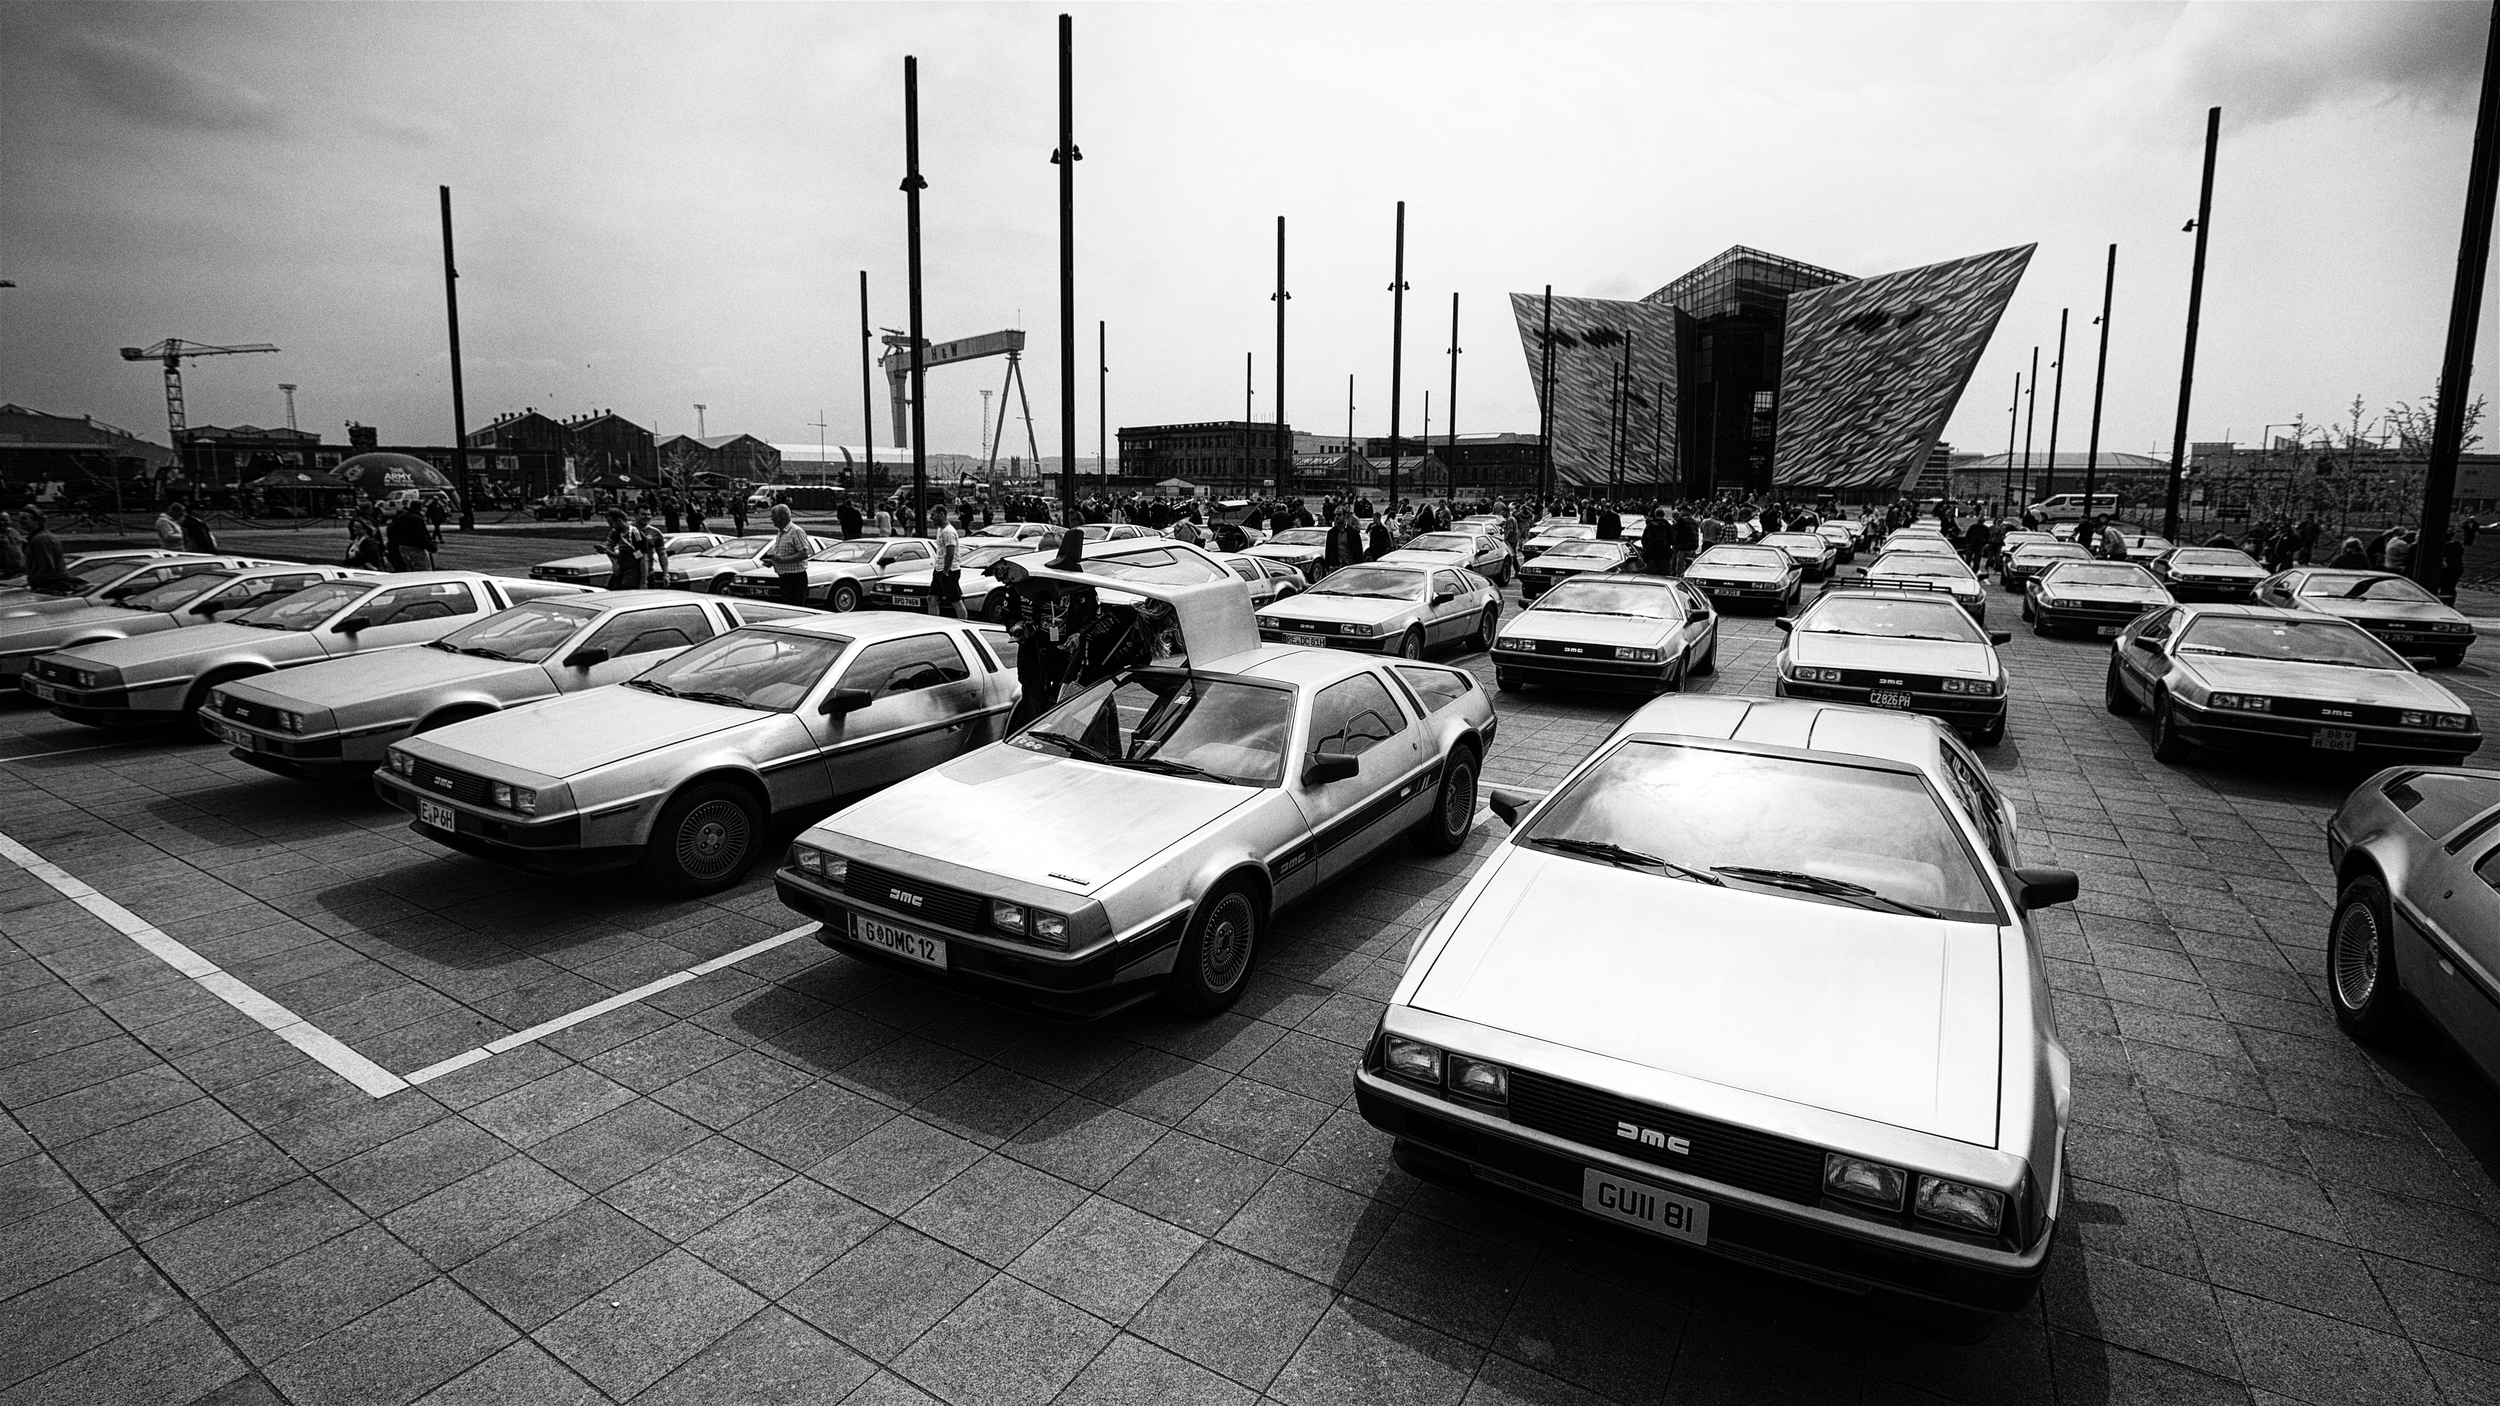 Gathering of DeLorean Cars.jpg